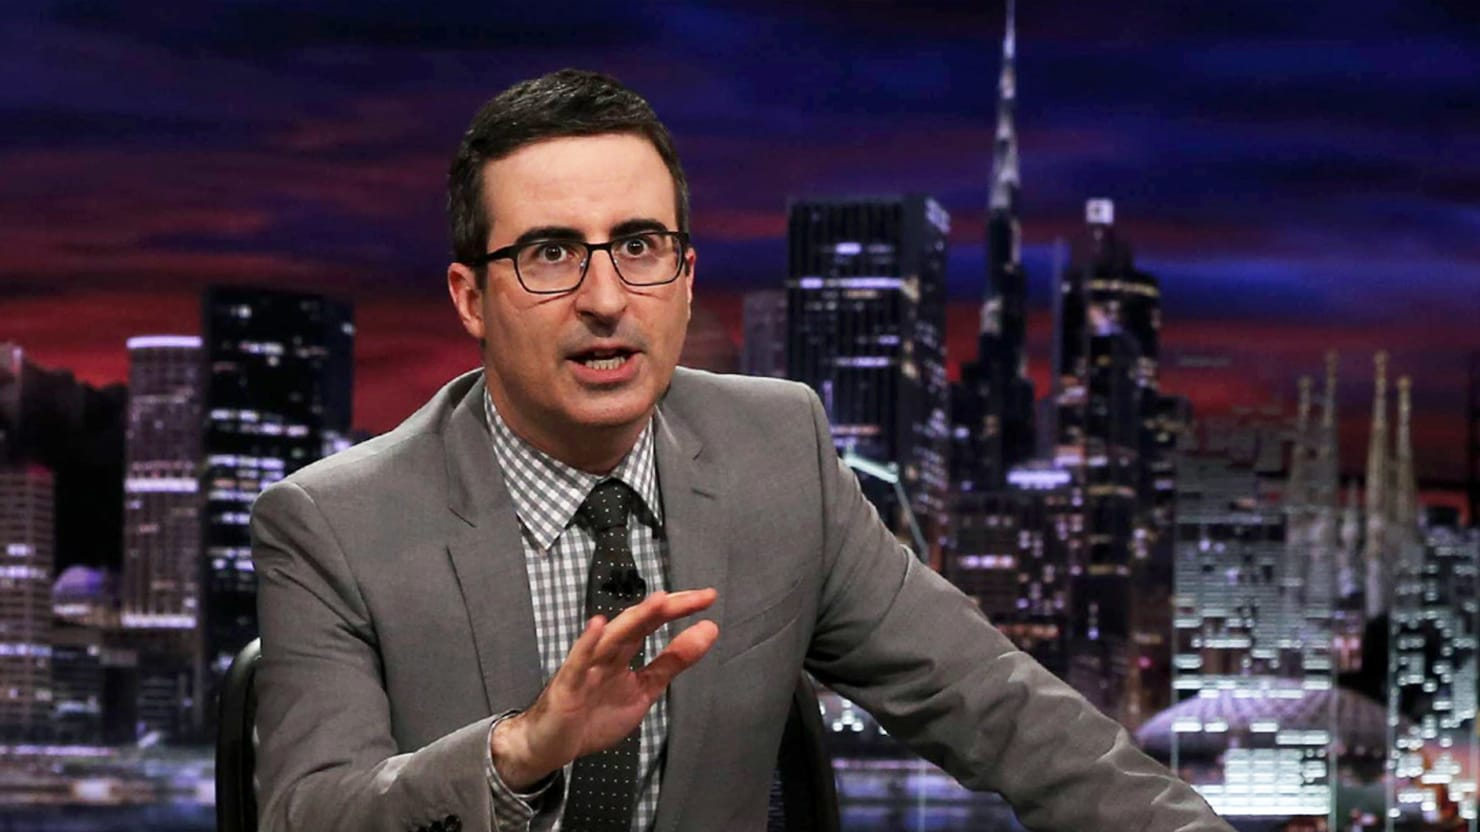 John Oliver Calls Out Pervert Anthony Weiner Over Hillary's Emails